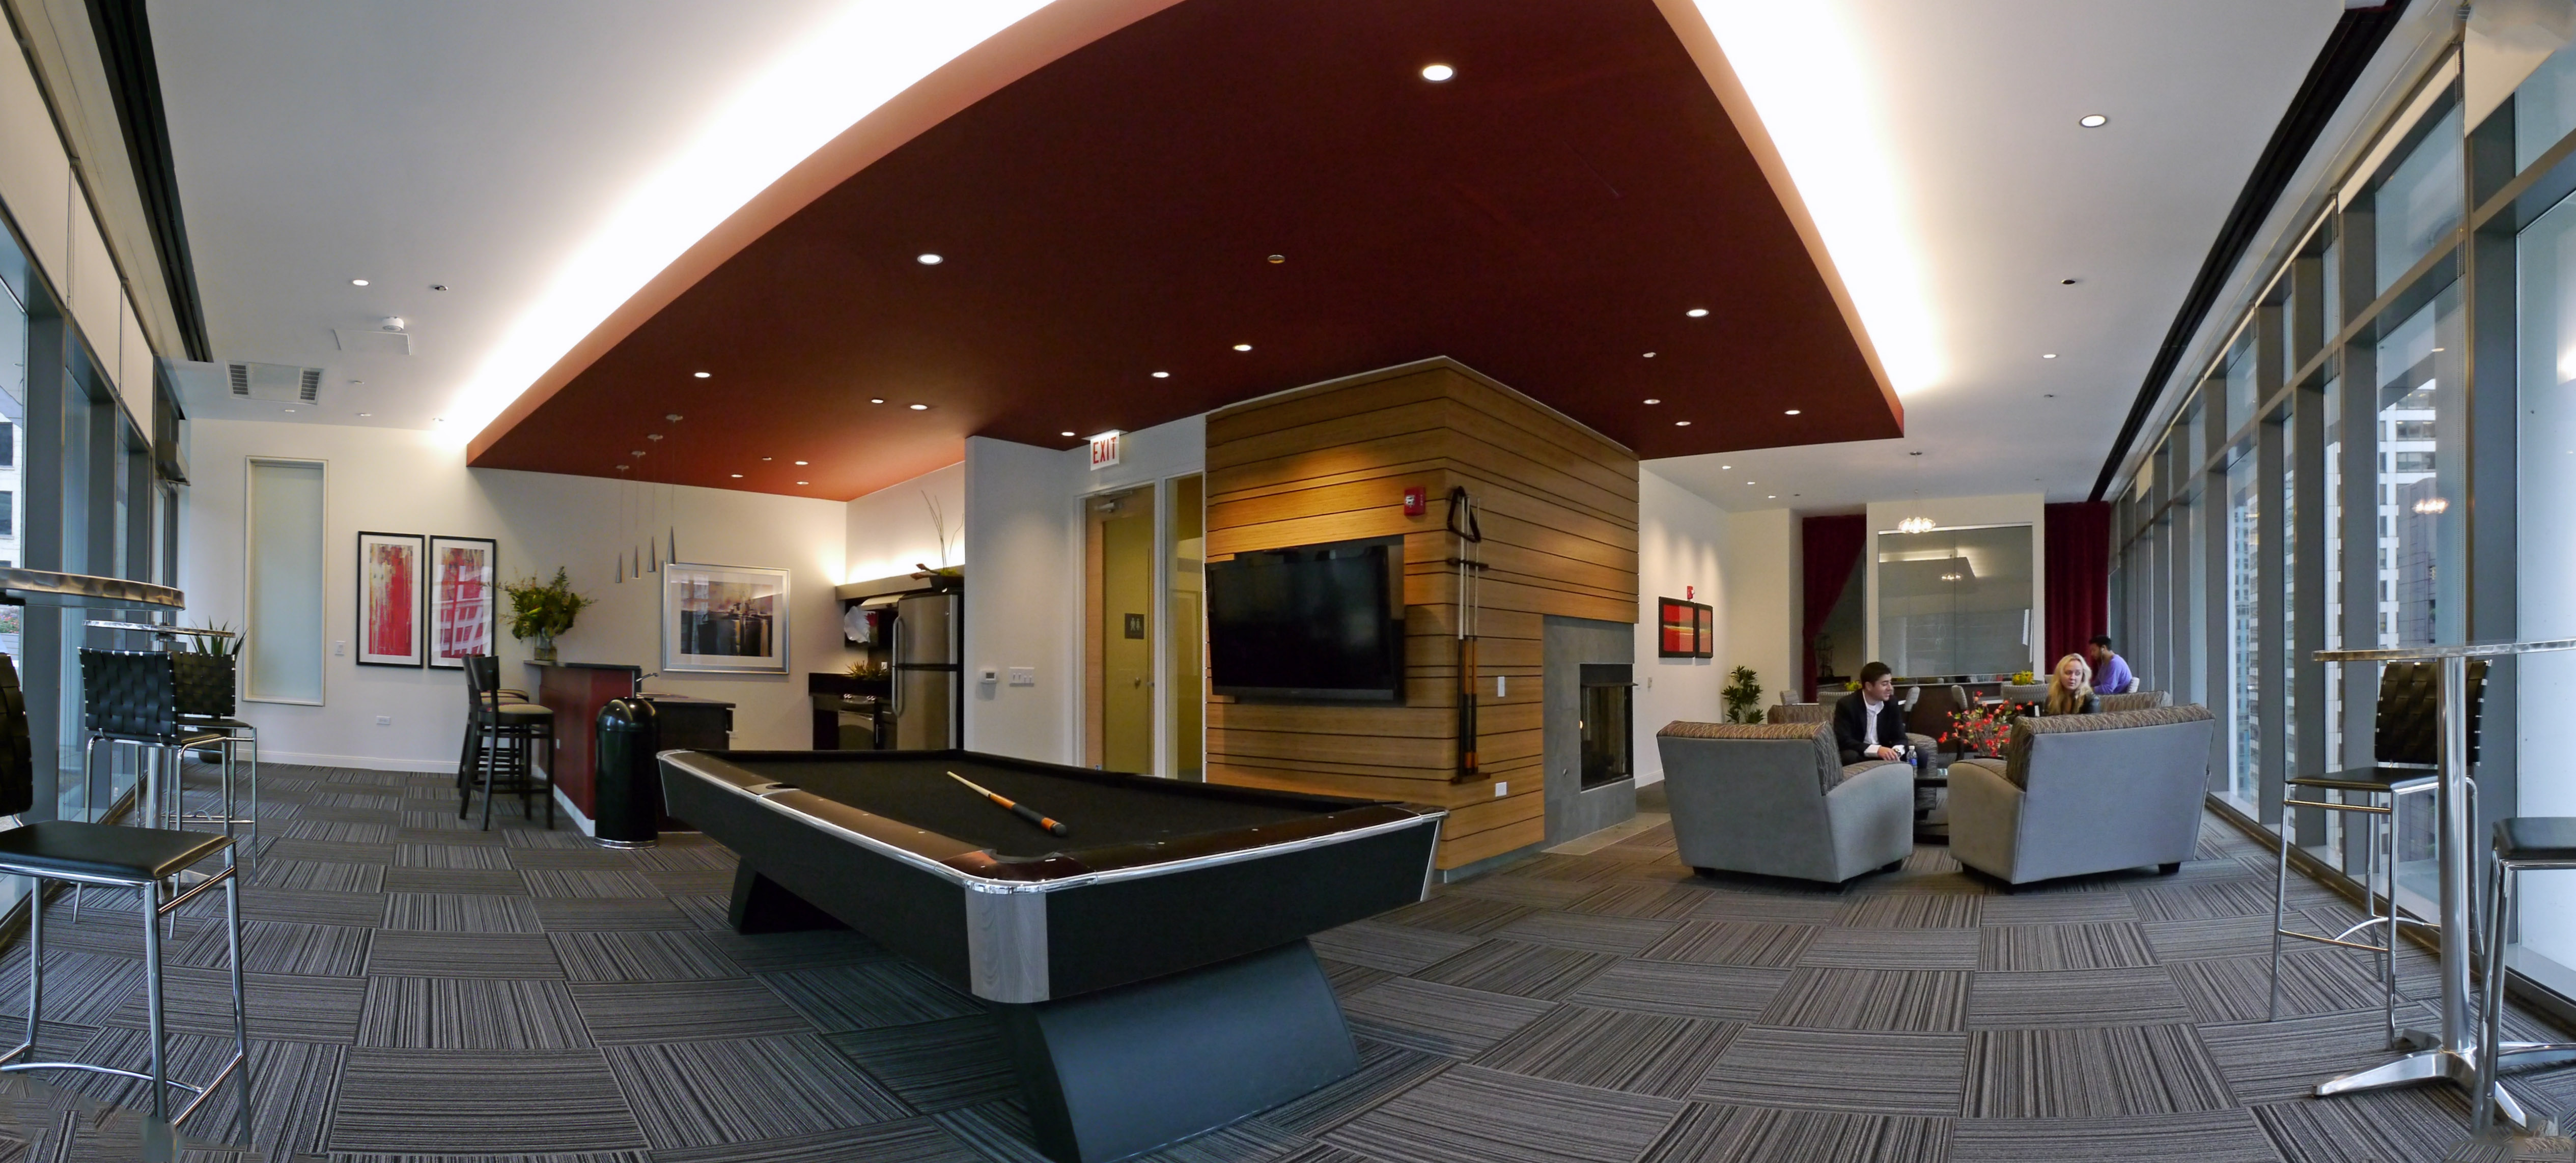 The large resident lounge has a kitchen bar gaming areas a gas